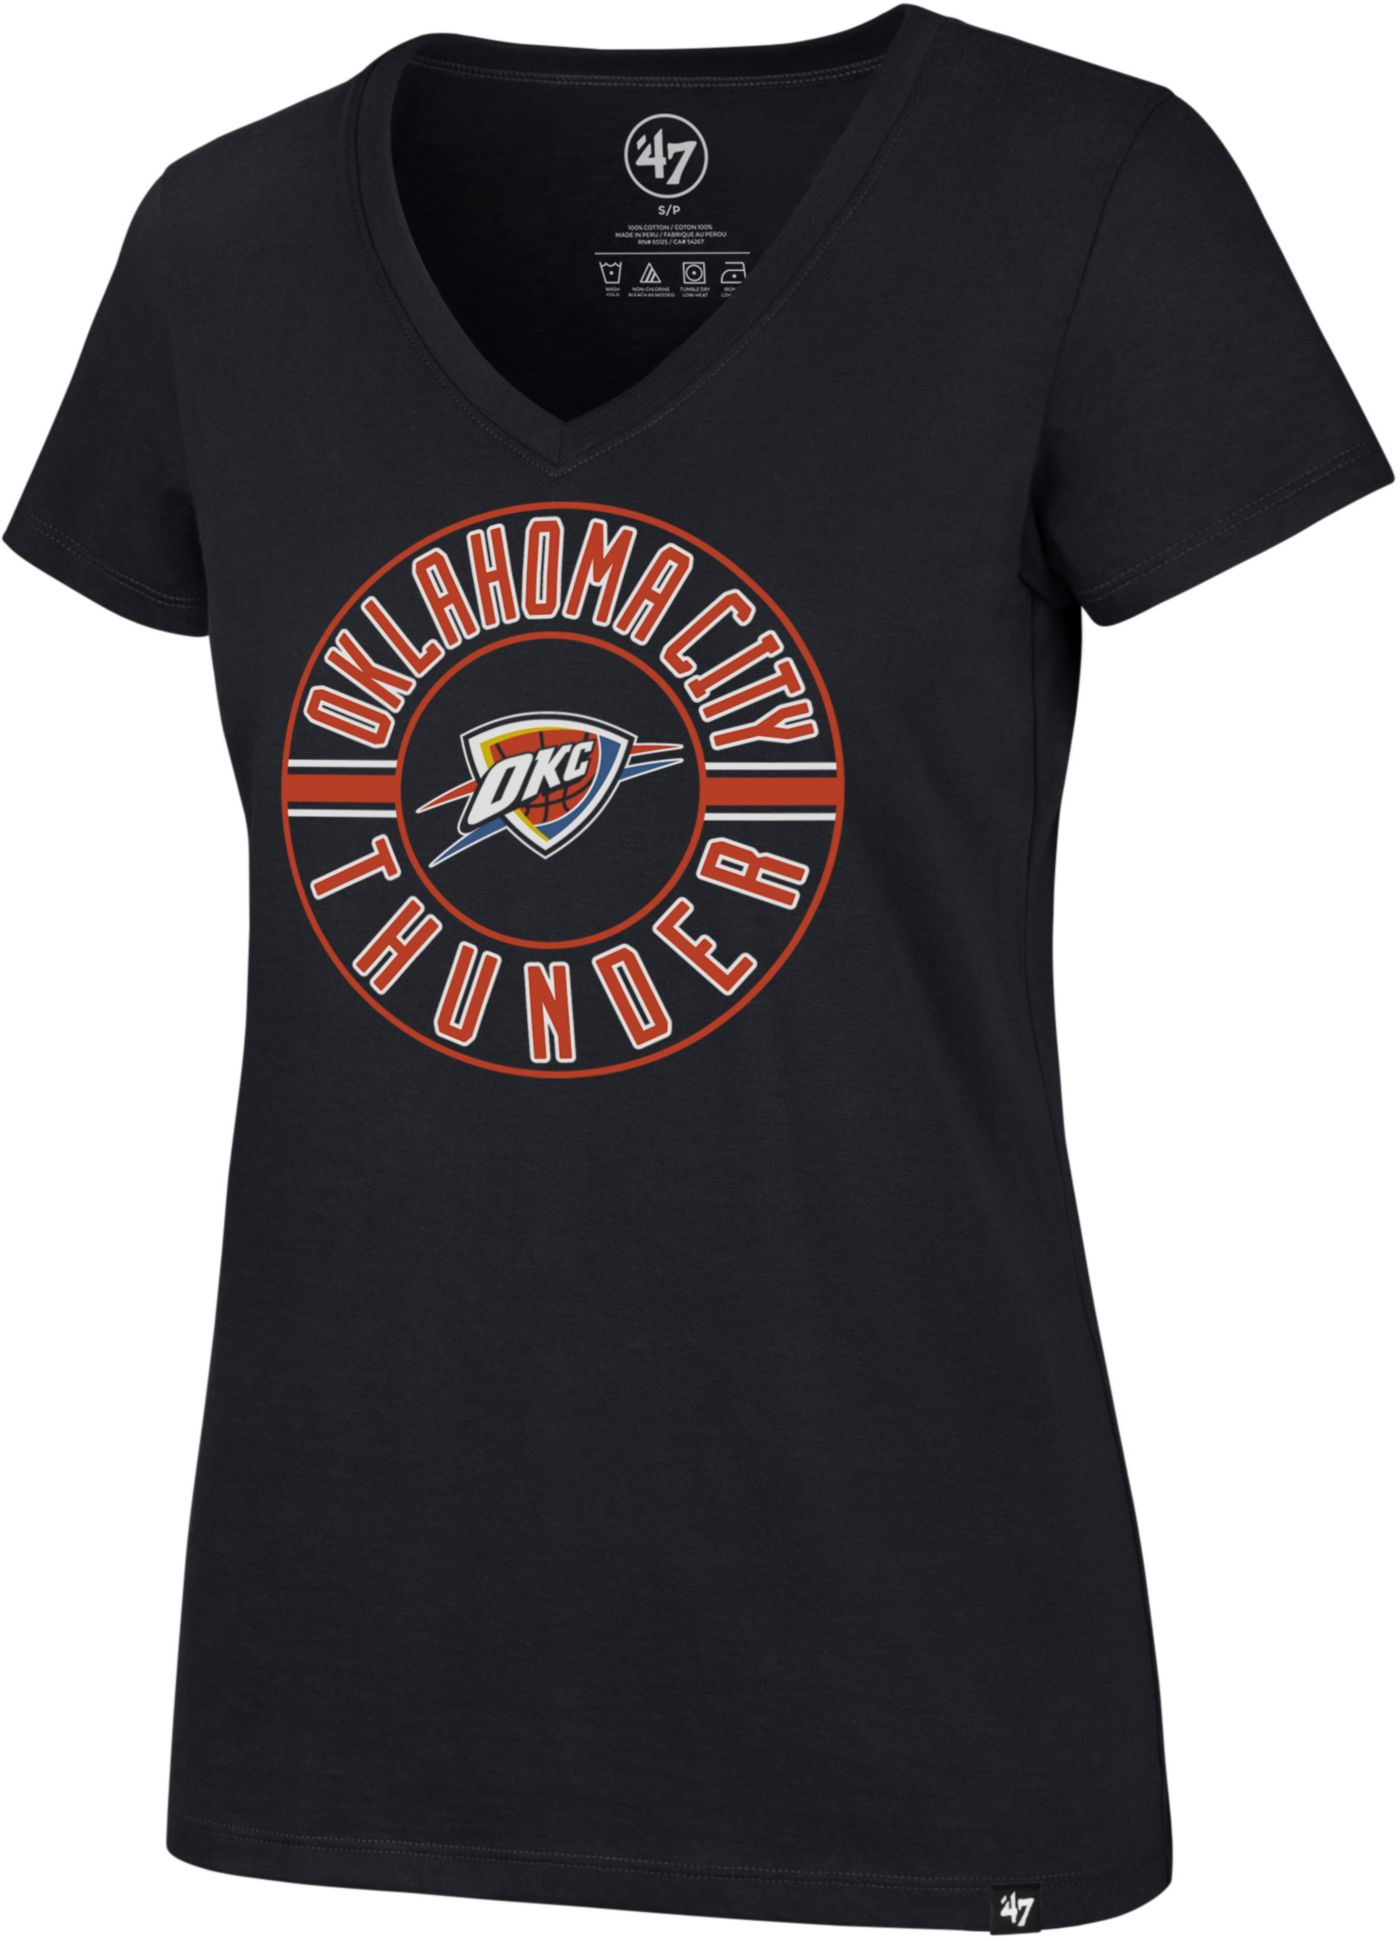 '47 Women's Oklahoma City Thunder V-Neck T-Shirt